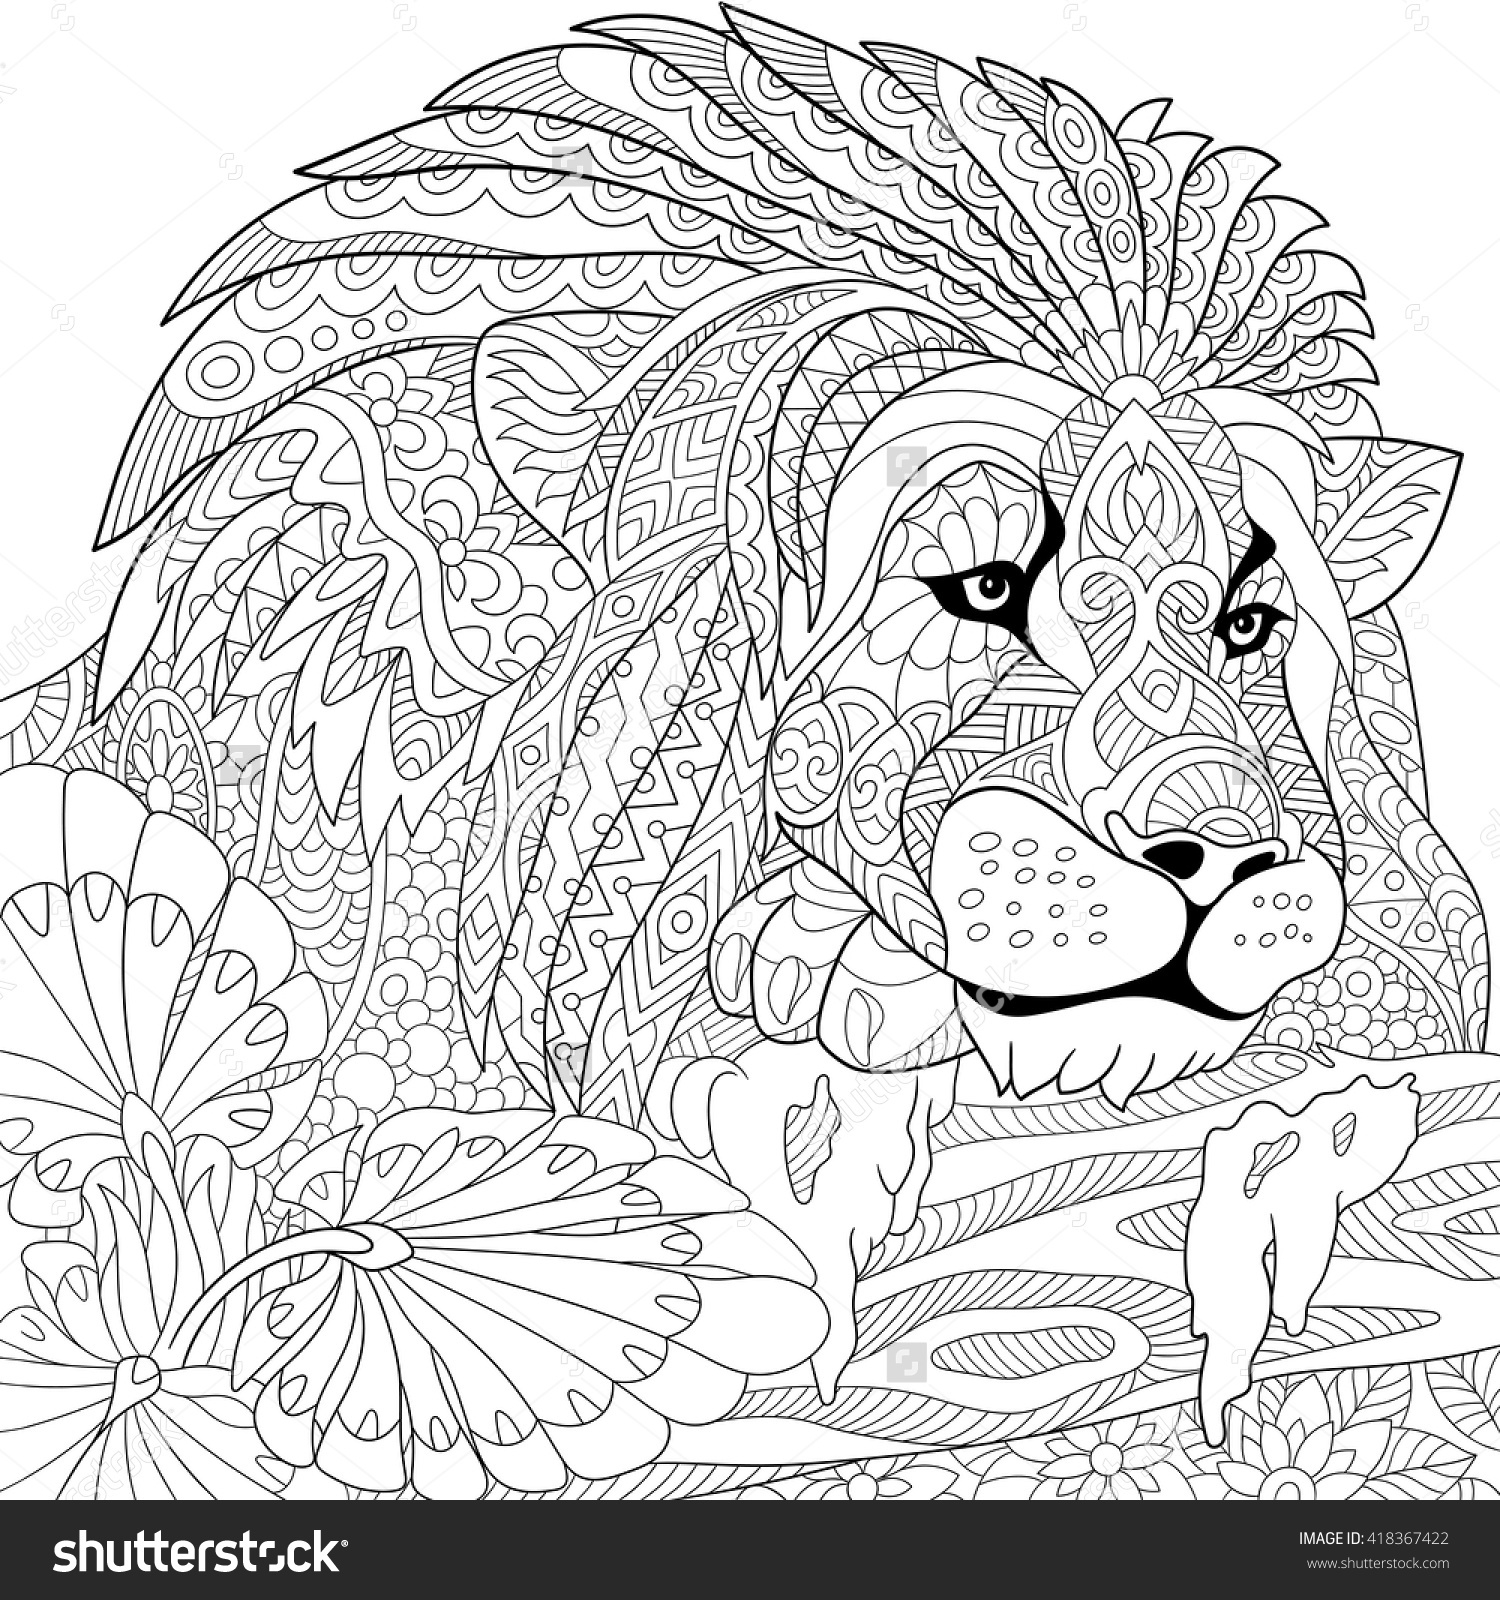 1500x1600 Hand Drawn Lion Coloring Page Stock Vector Illustration To Print